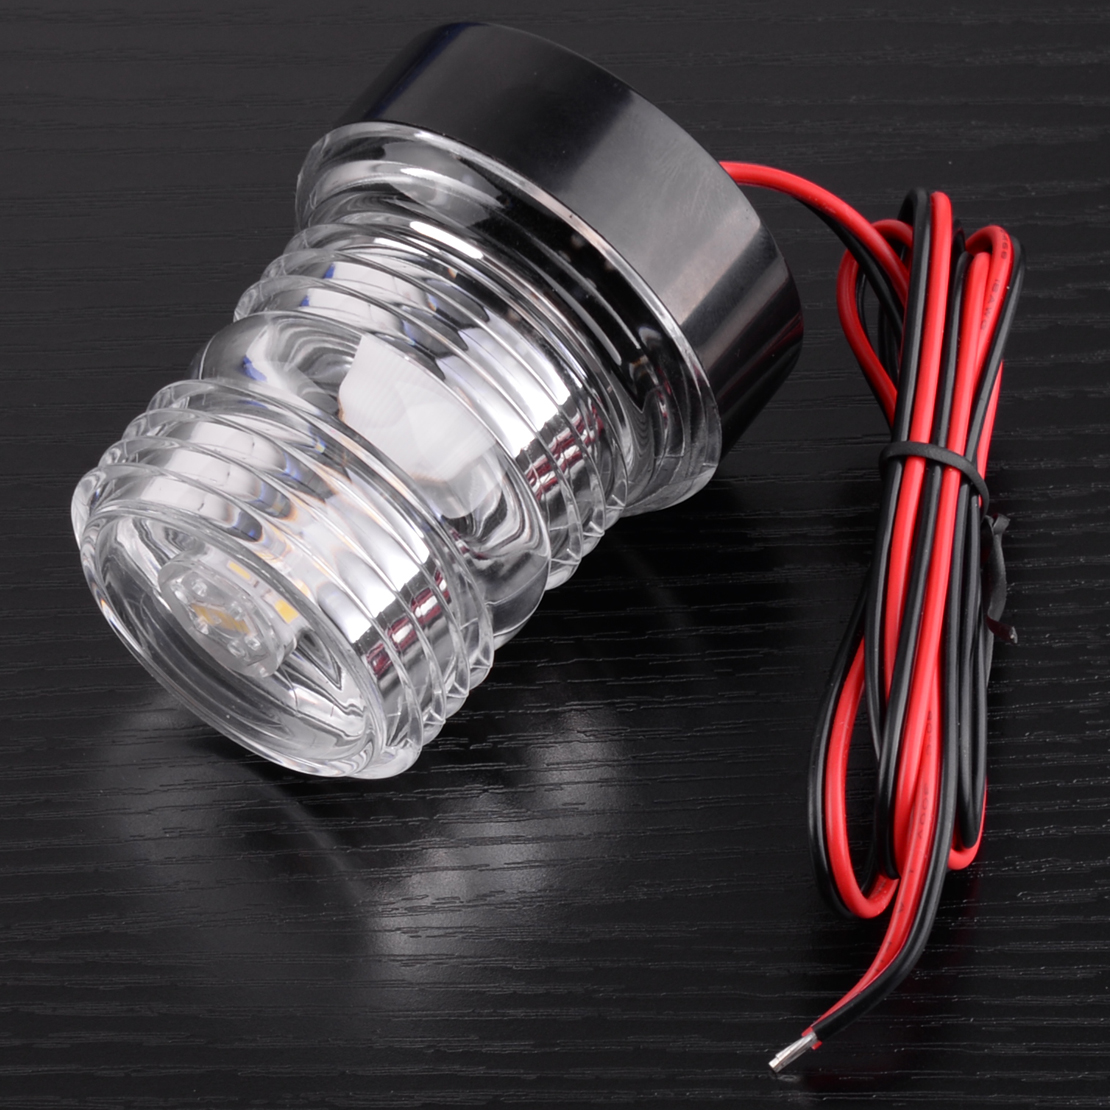 beler 12V Dustproof Waterproof Super Bright Marine Boat Yacht Stern Anchor LED Navigation Lights 360 All round White Lamp